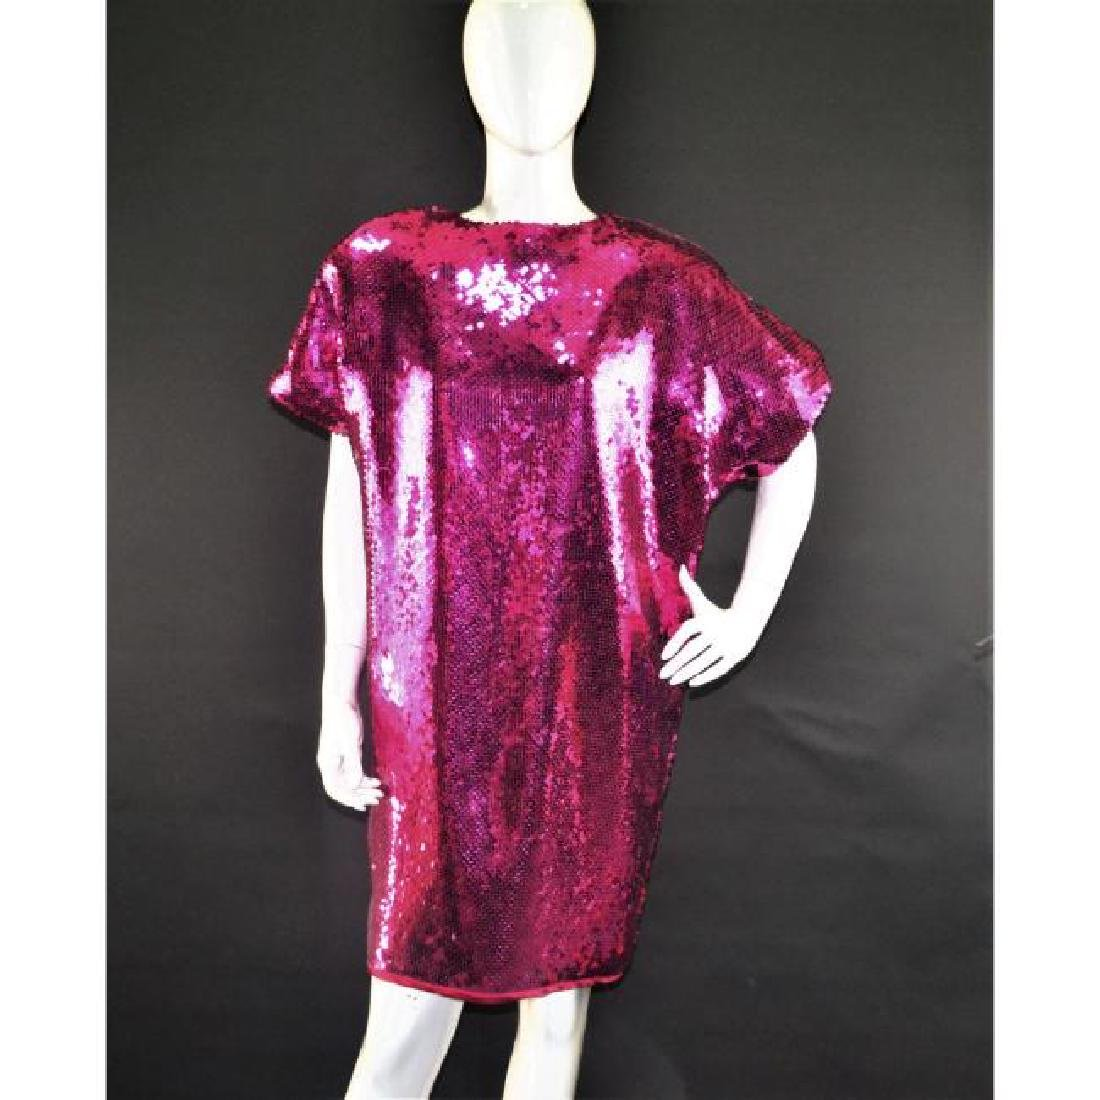 Lesley's Sequioned Fuscia Dress by Dann Hanis of New